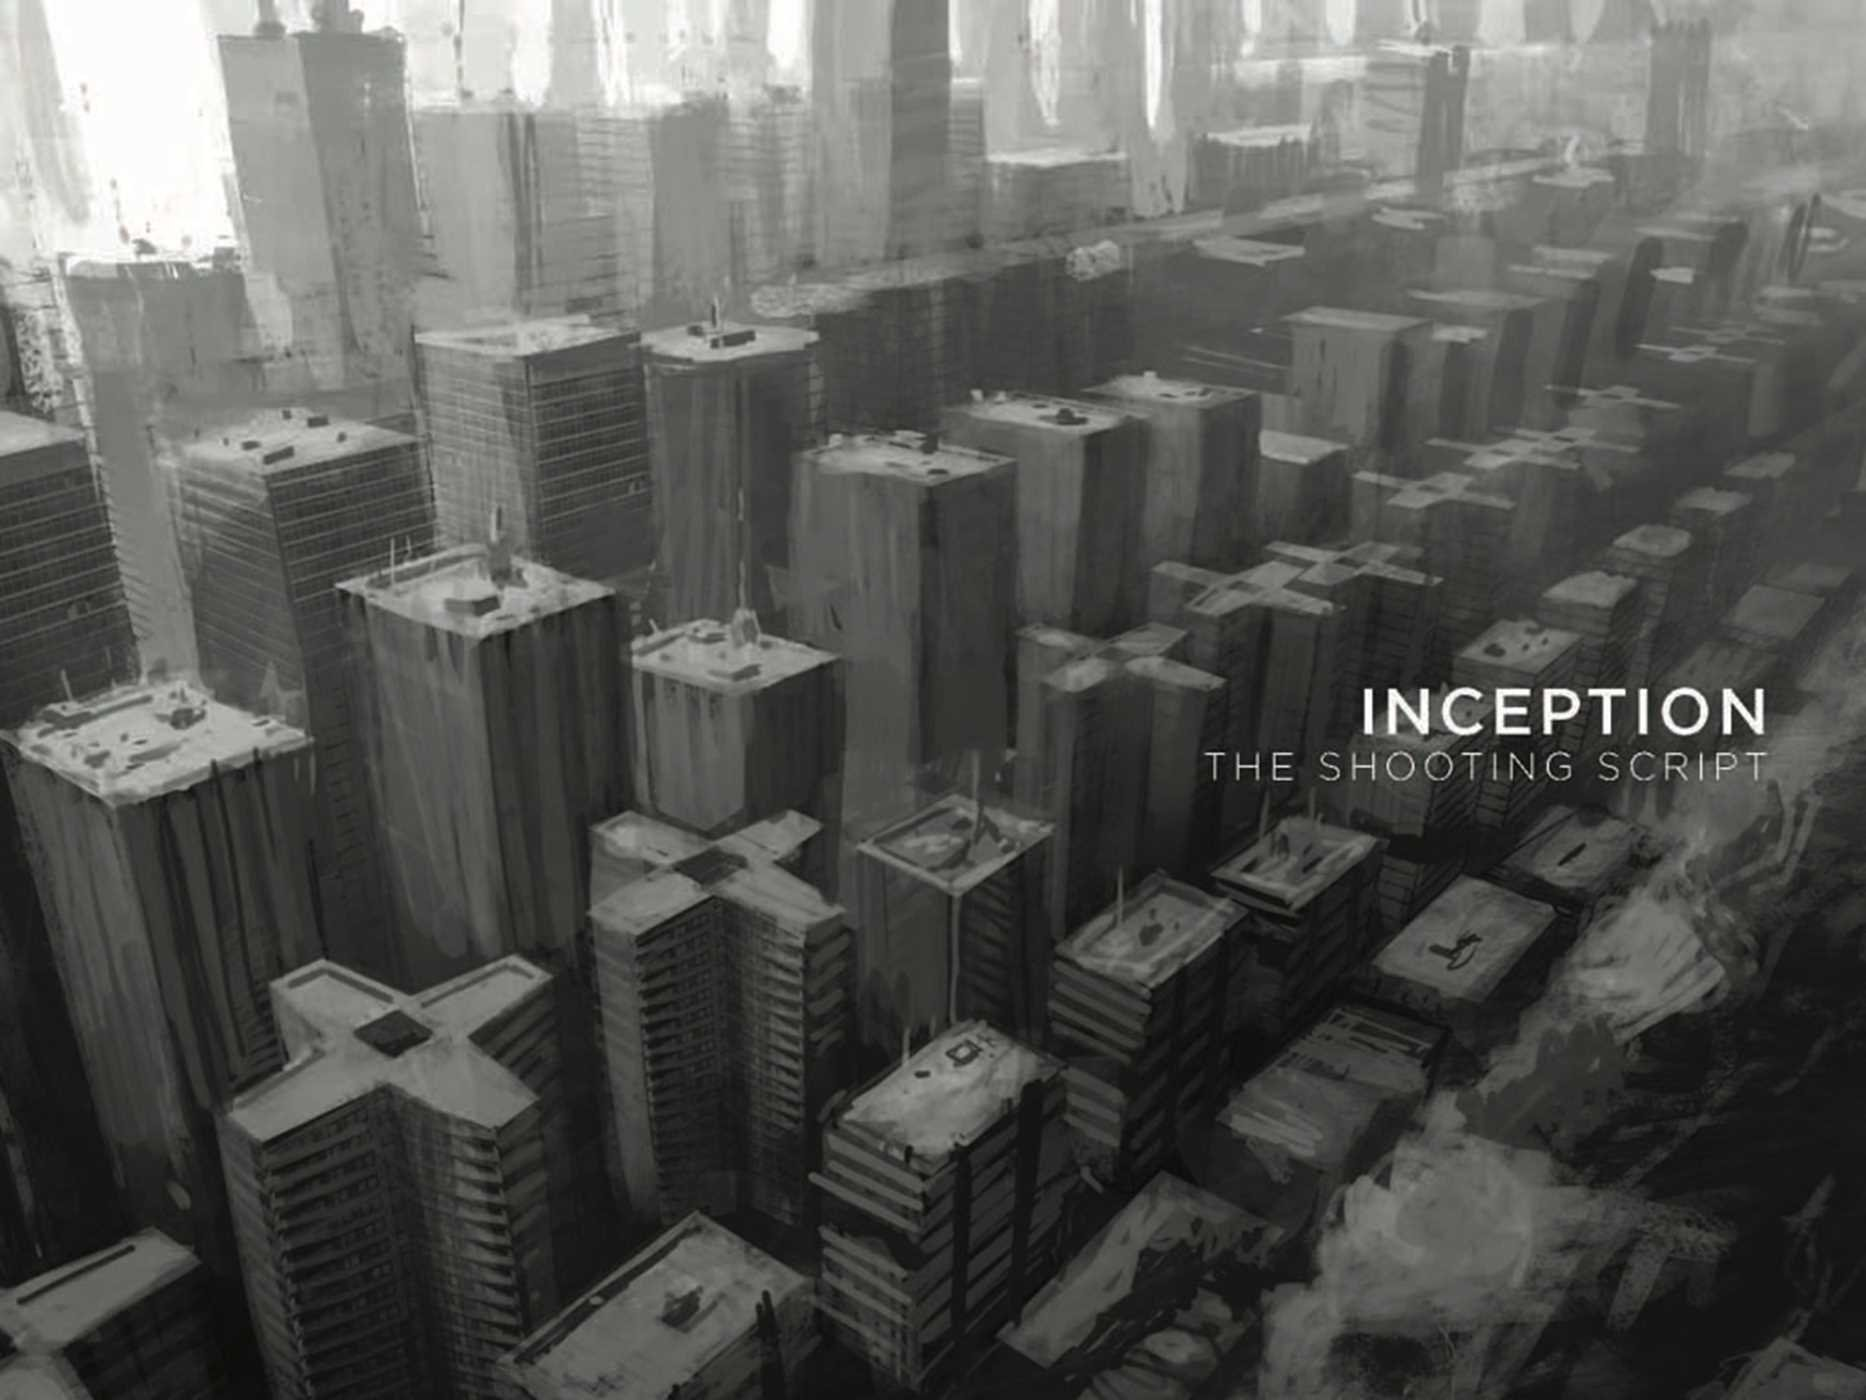 inception by christopher nolan essay Dunkirk heralds the return of christopher nolan  music of the movies: christopher nolan and hans zimmer  a blending of inception's rattling dreamscape,.